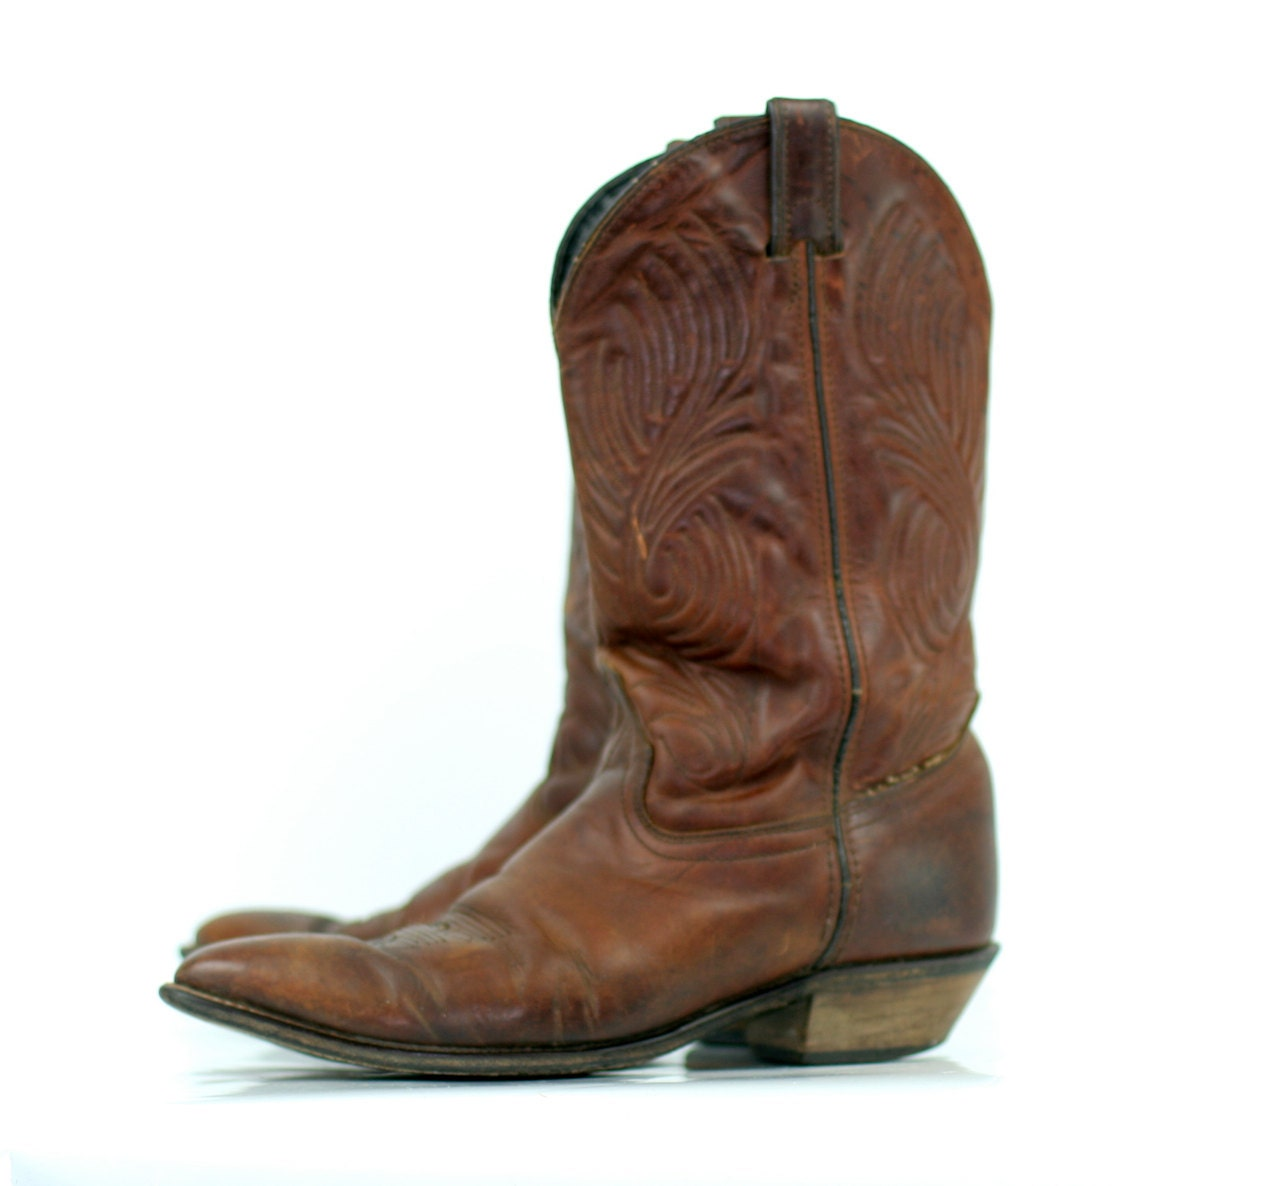 Vintage Cowboy Boots in Chestnut Brown by Code West by xoUda